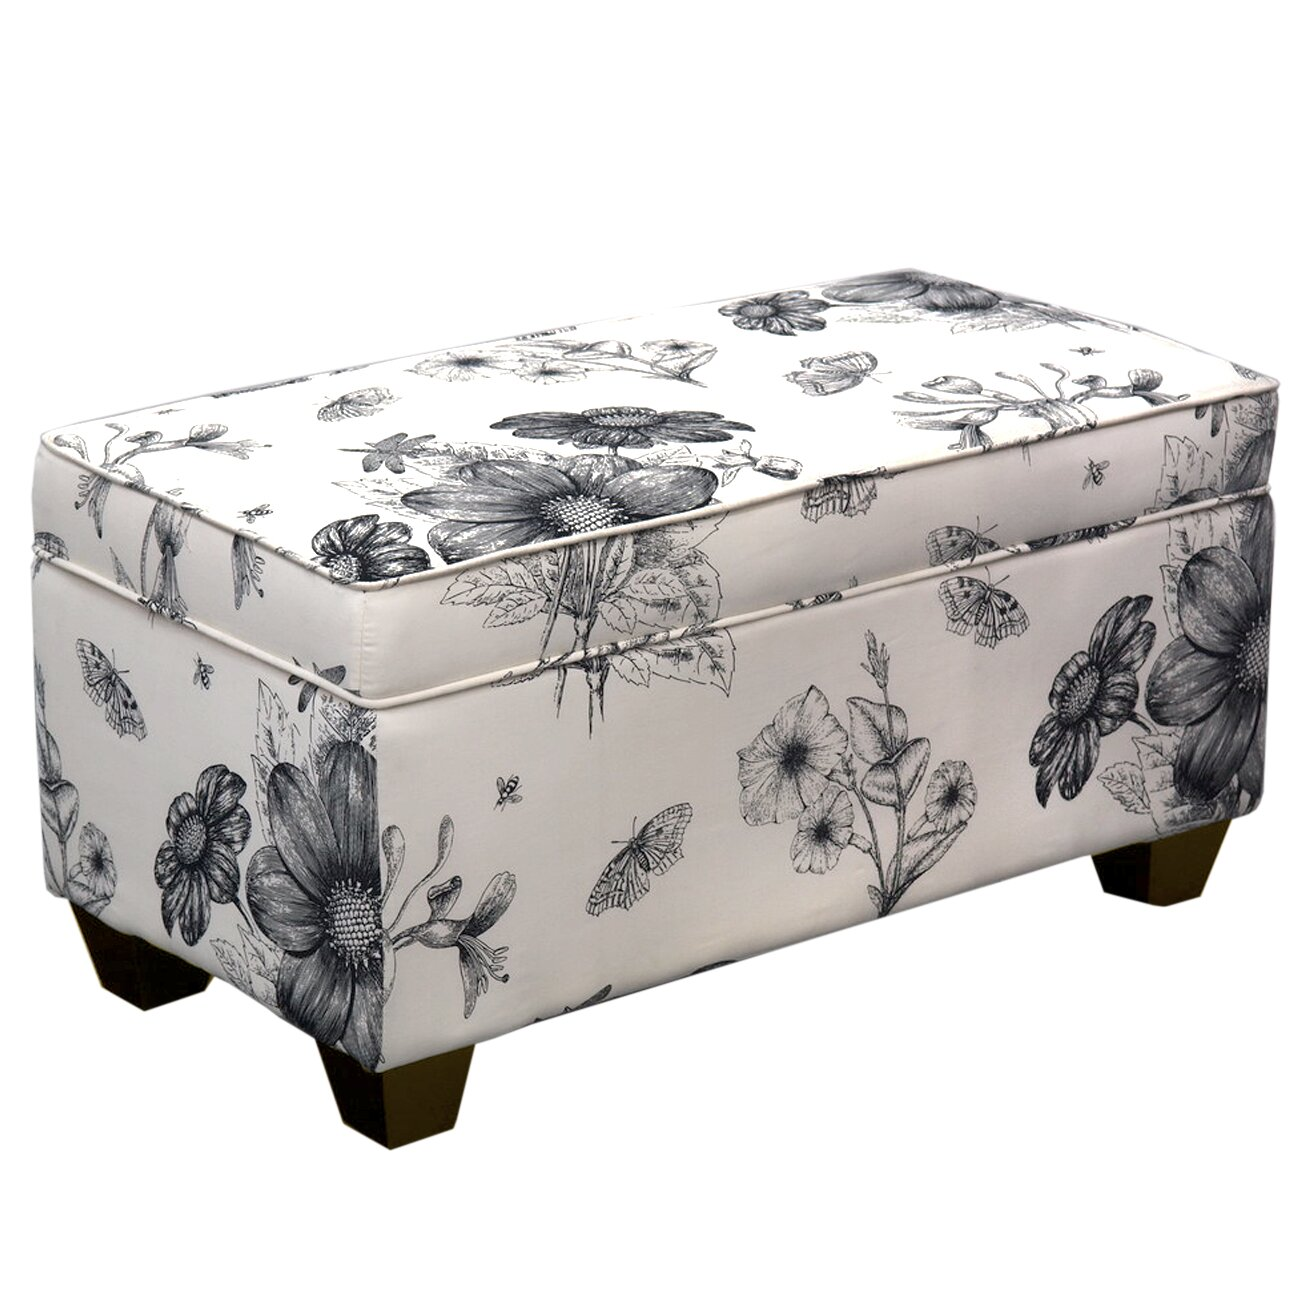 Alcott Hill Upholstered Storage Bedroom Bench In Black White Floral Reviews Wayfair